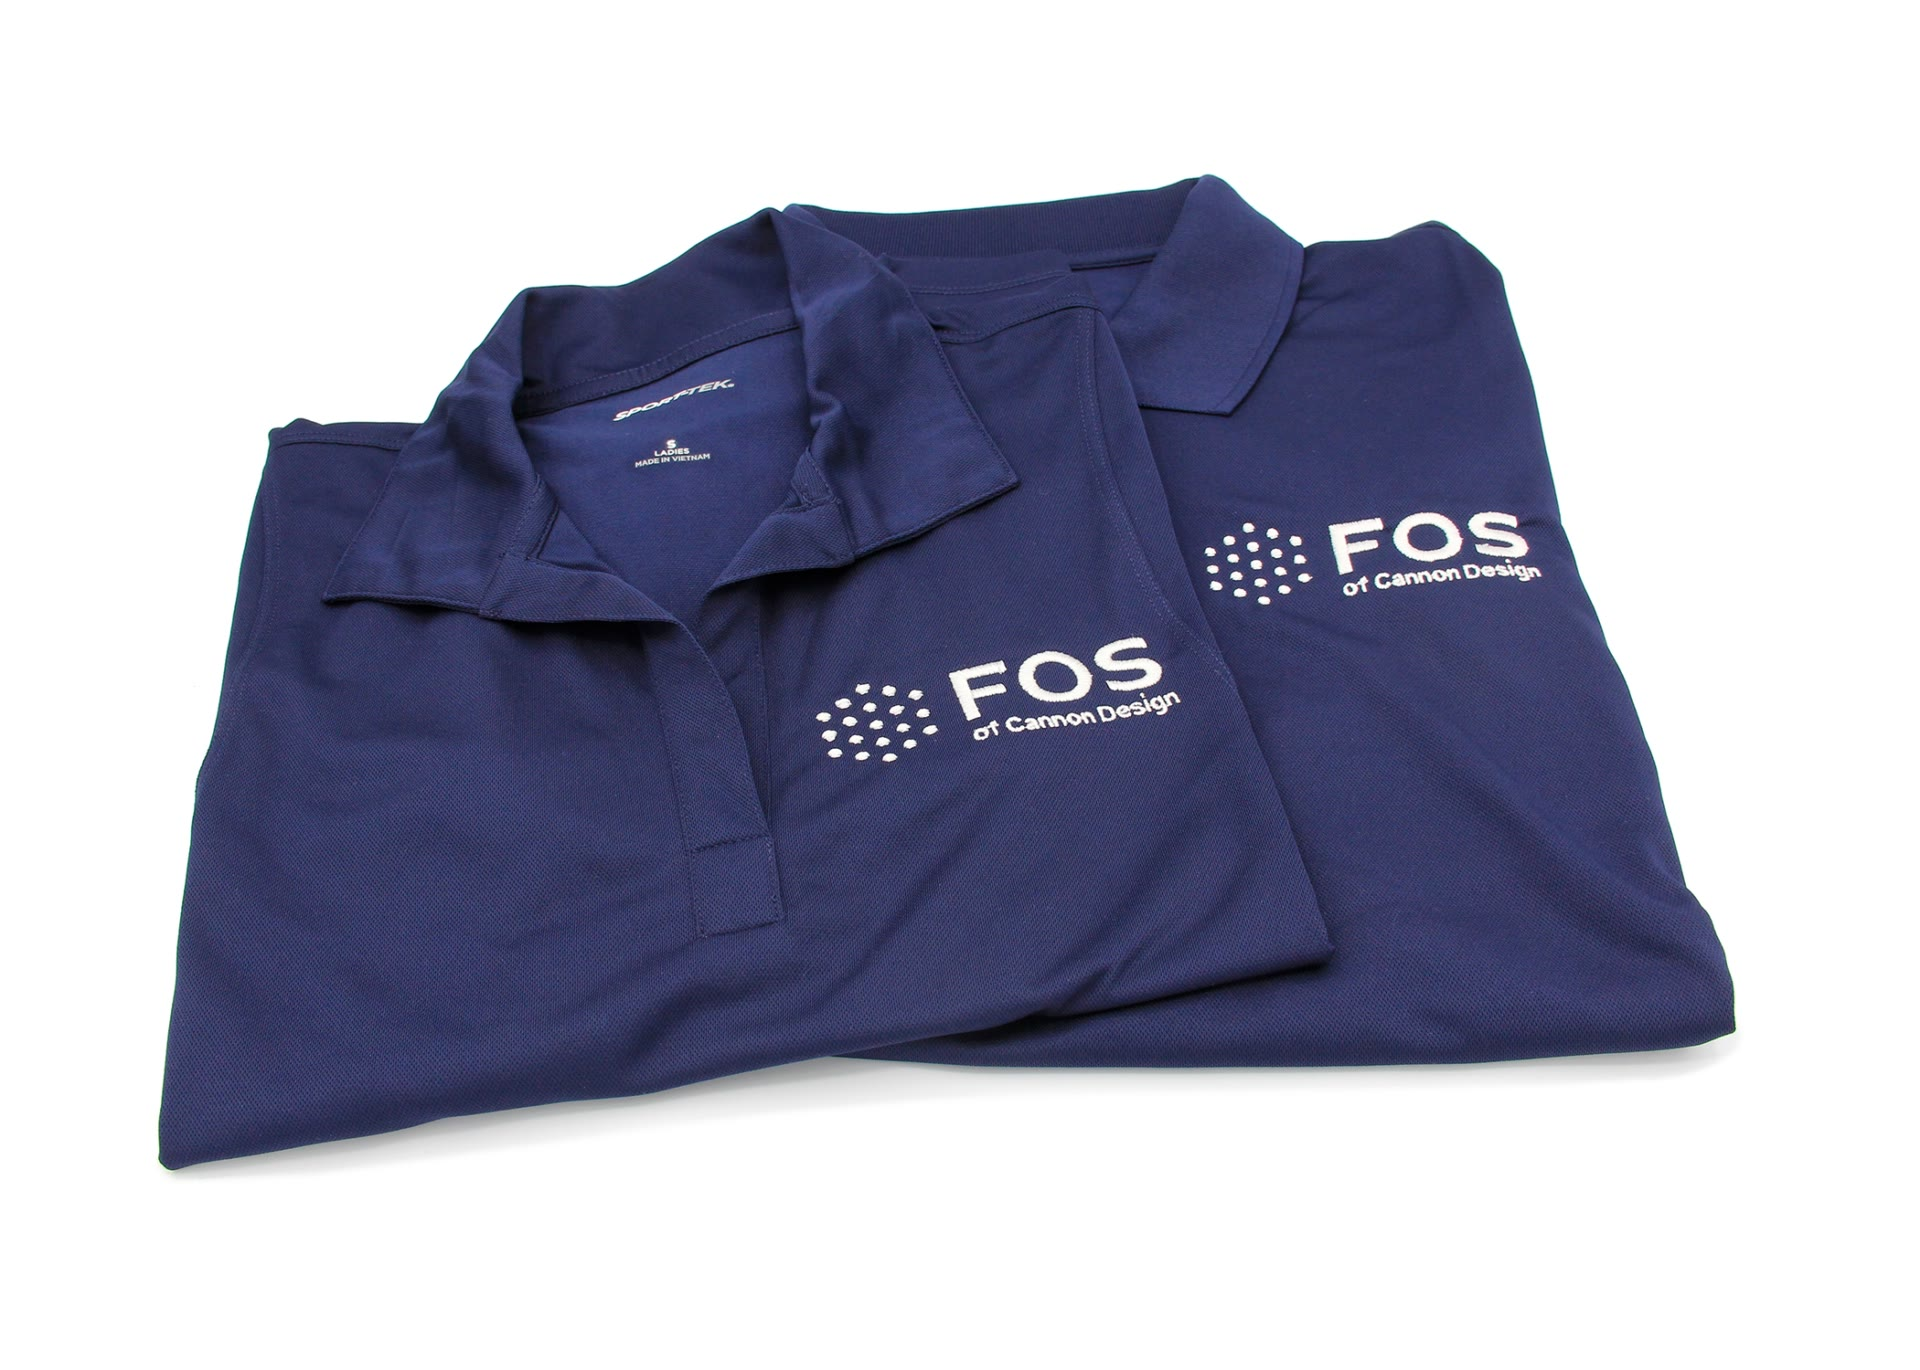 FOS of Cannon Design t-shirts